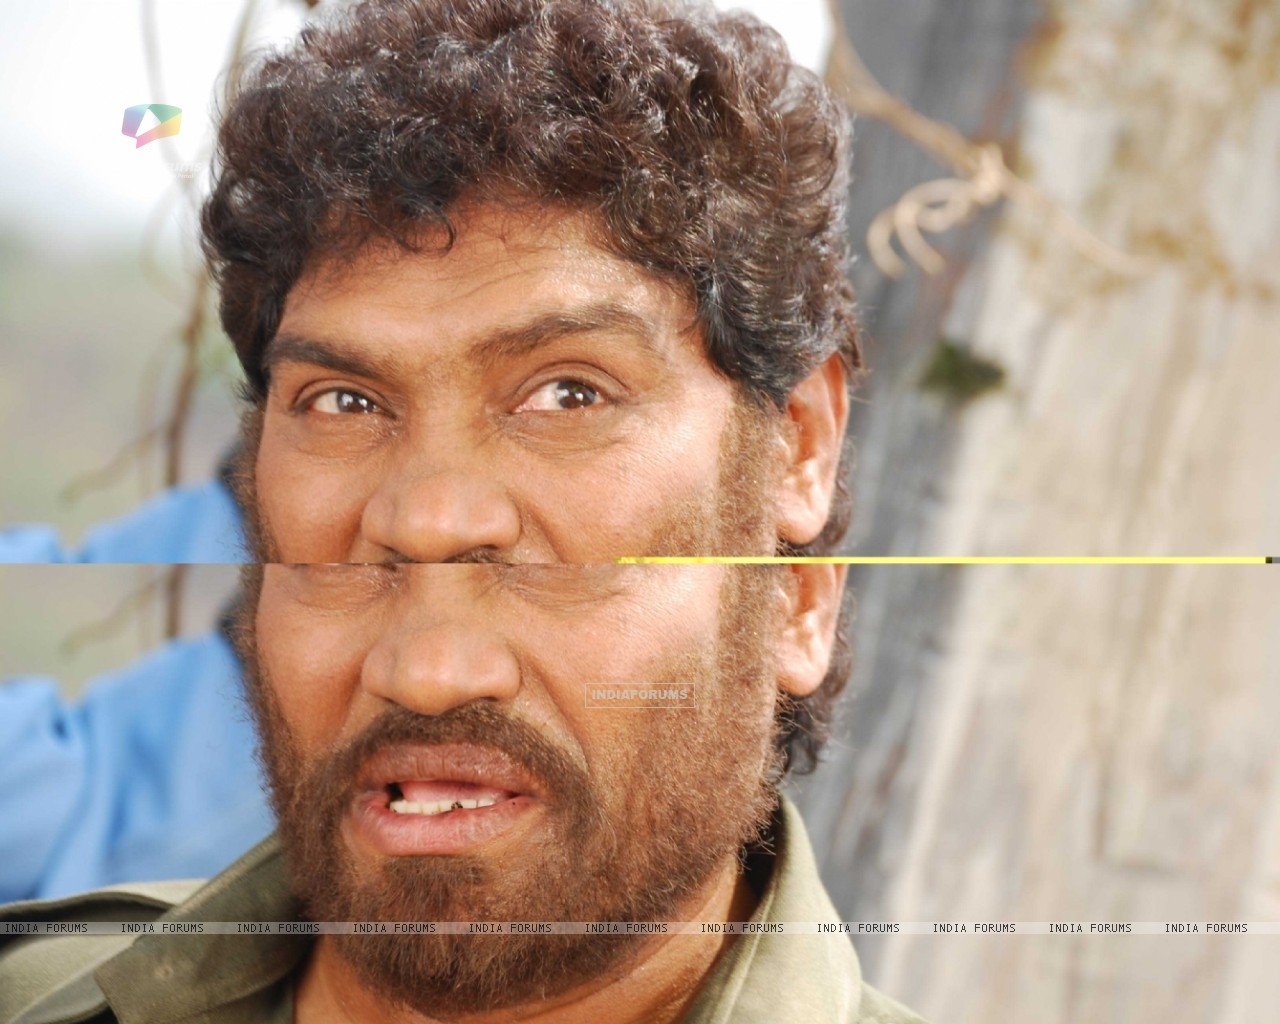 Johny Lever looking horrible (12628) size:1280x1024